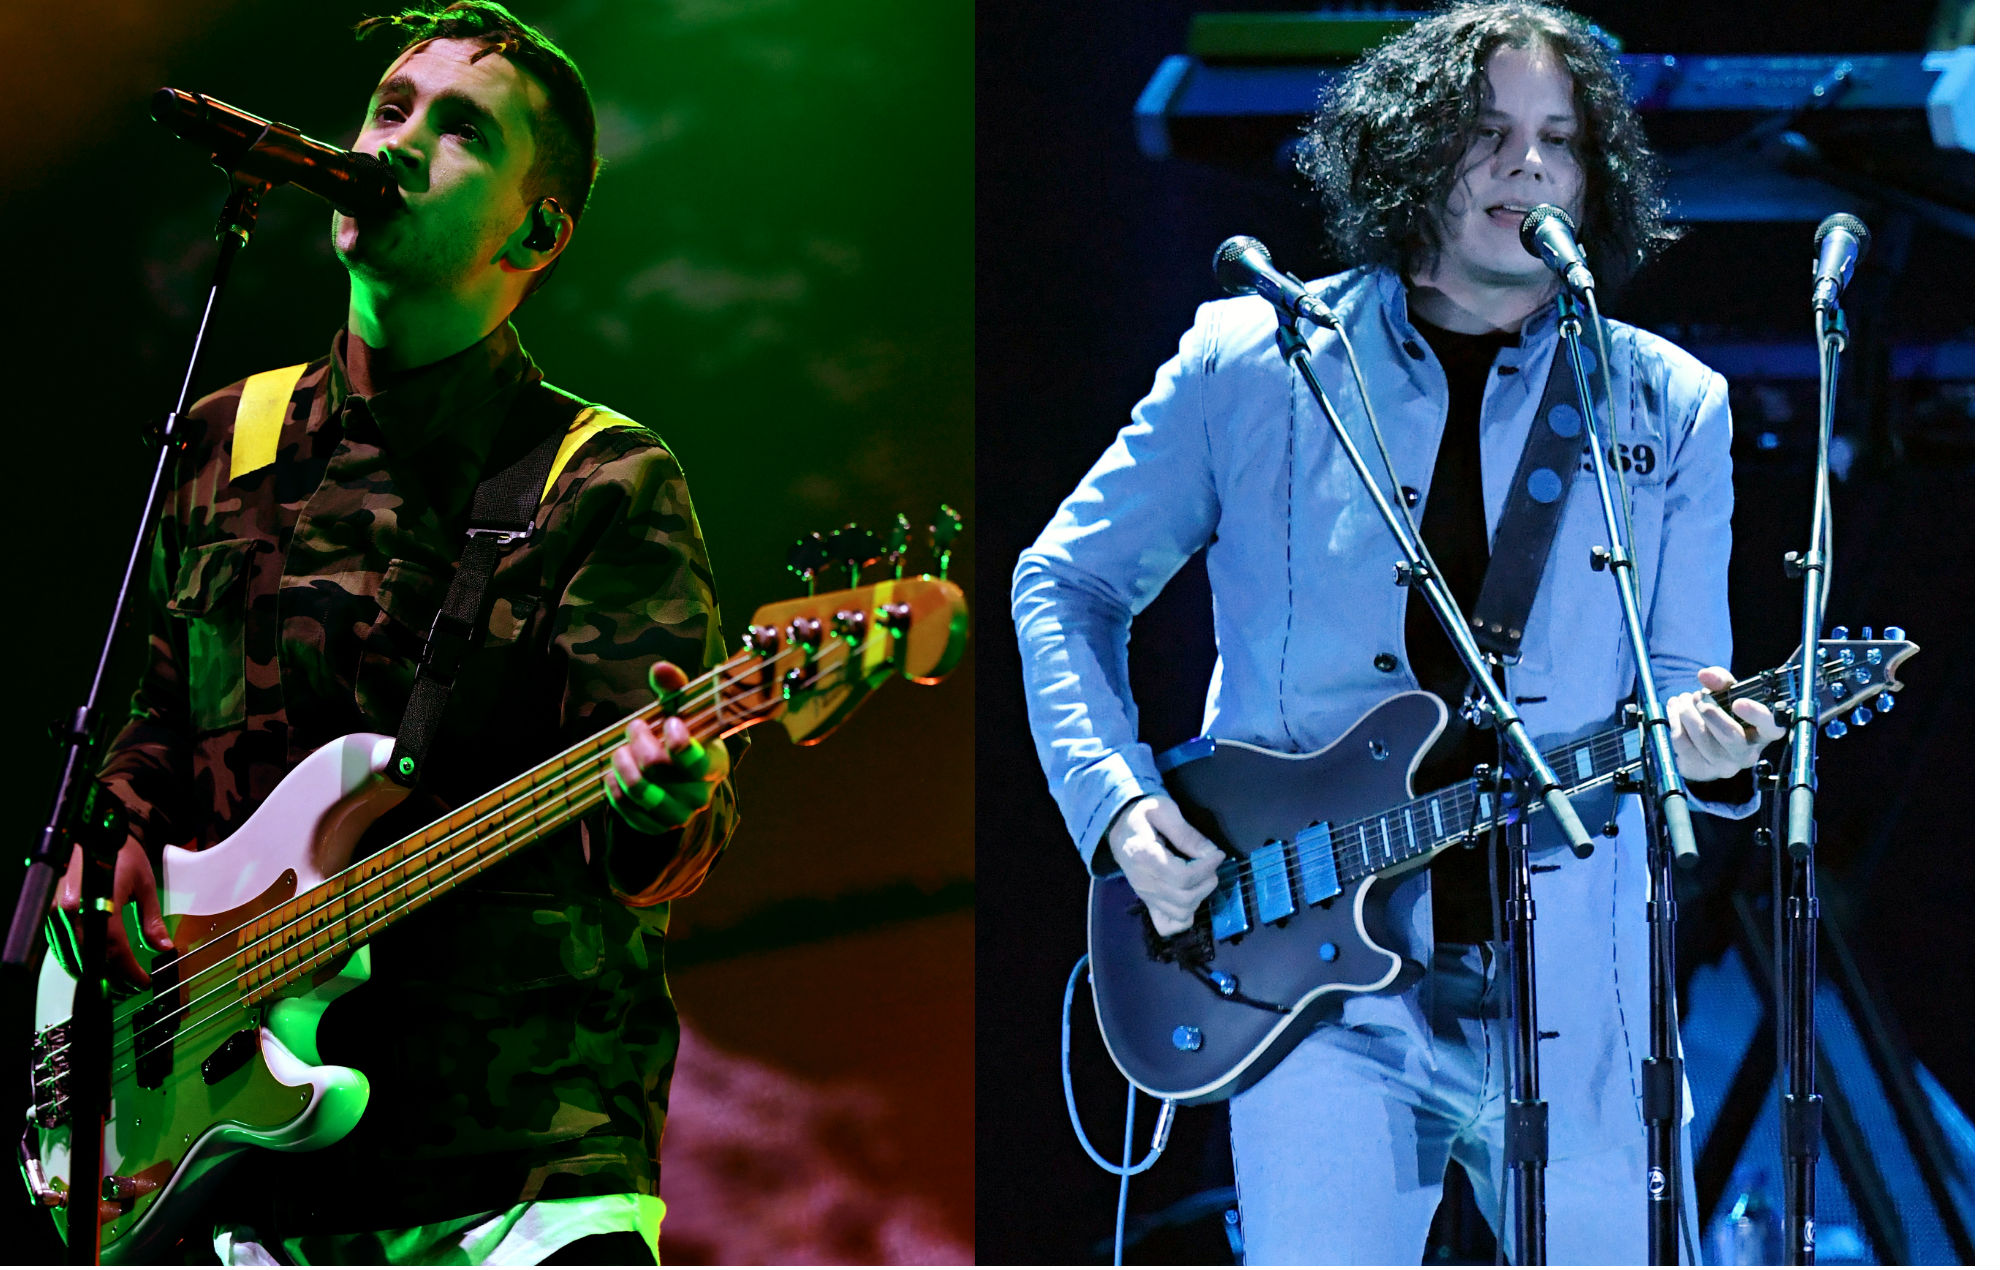 Twenty One Pilots' Tyler Joseph receives guitar pedals and special note from Jack White